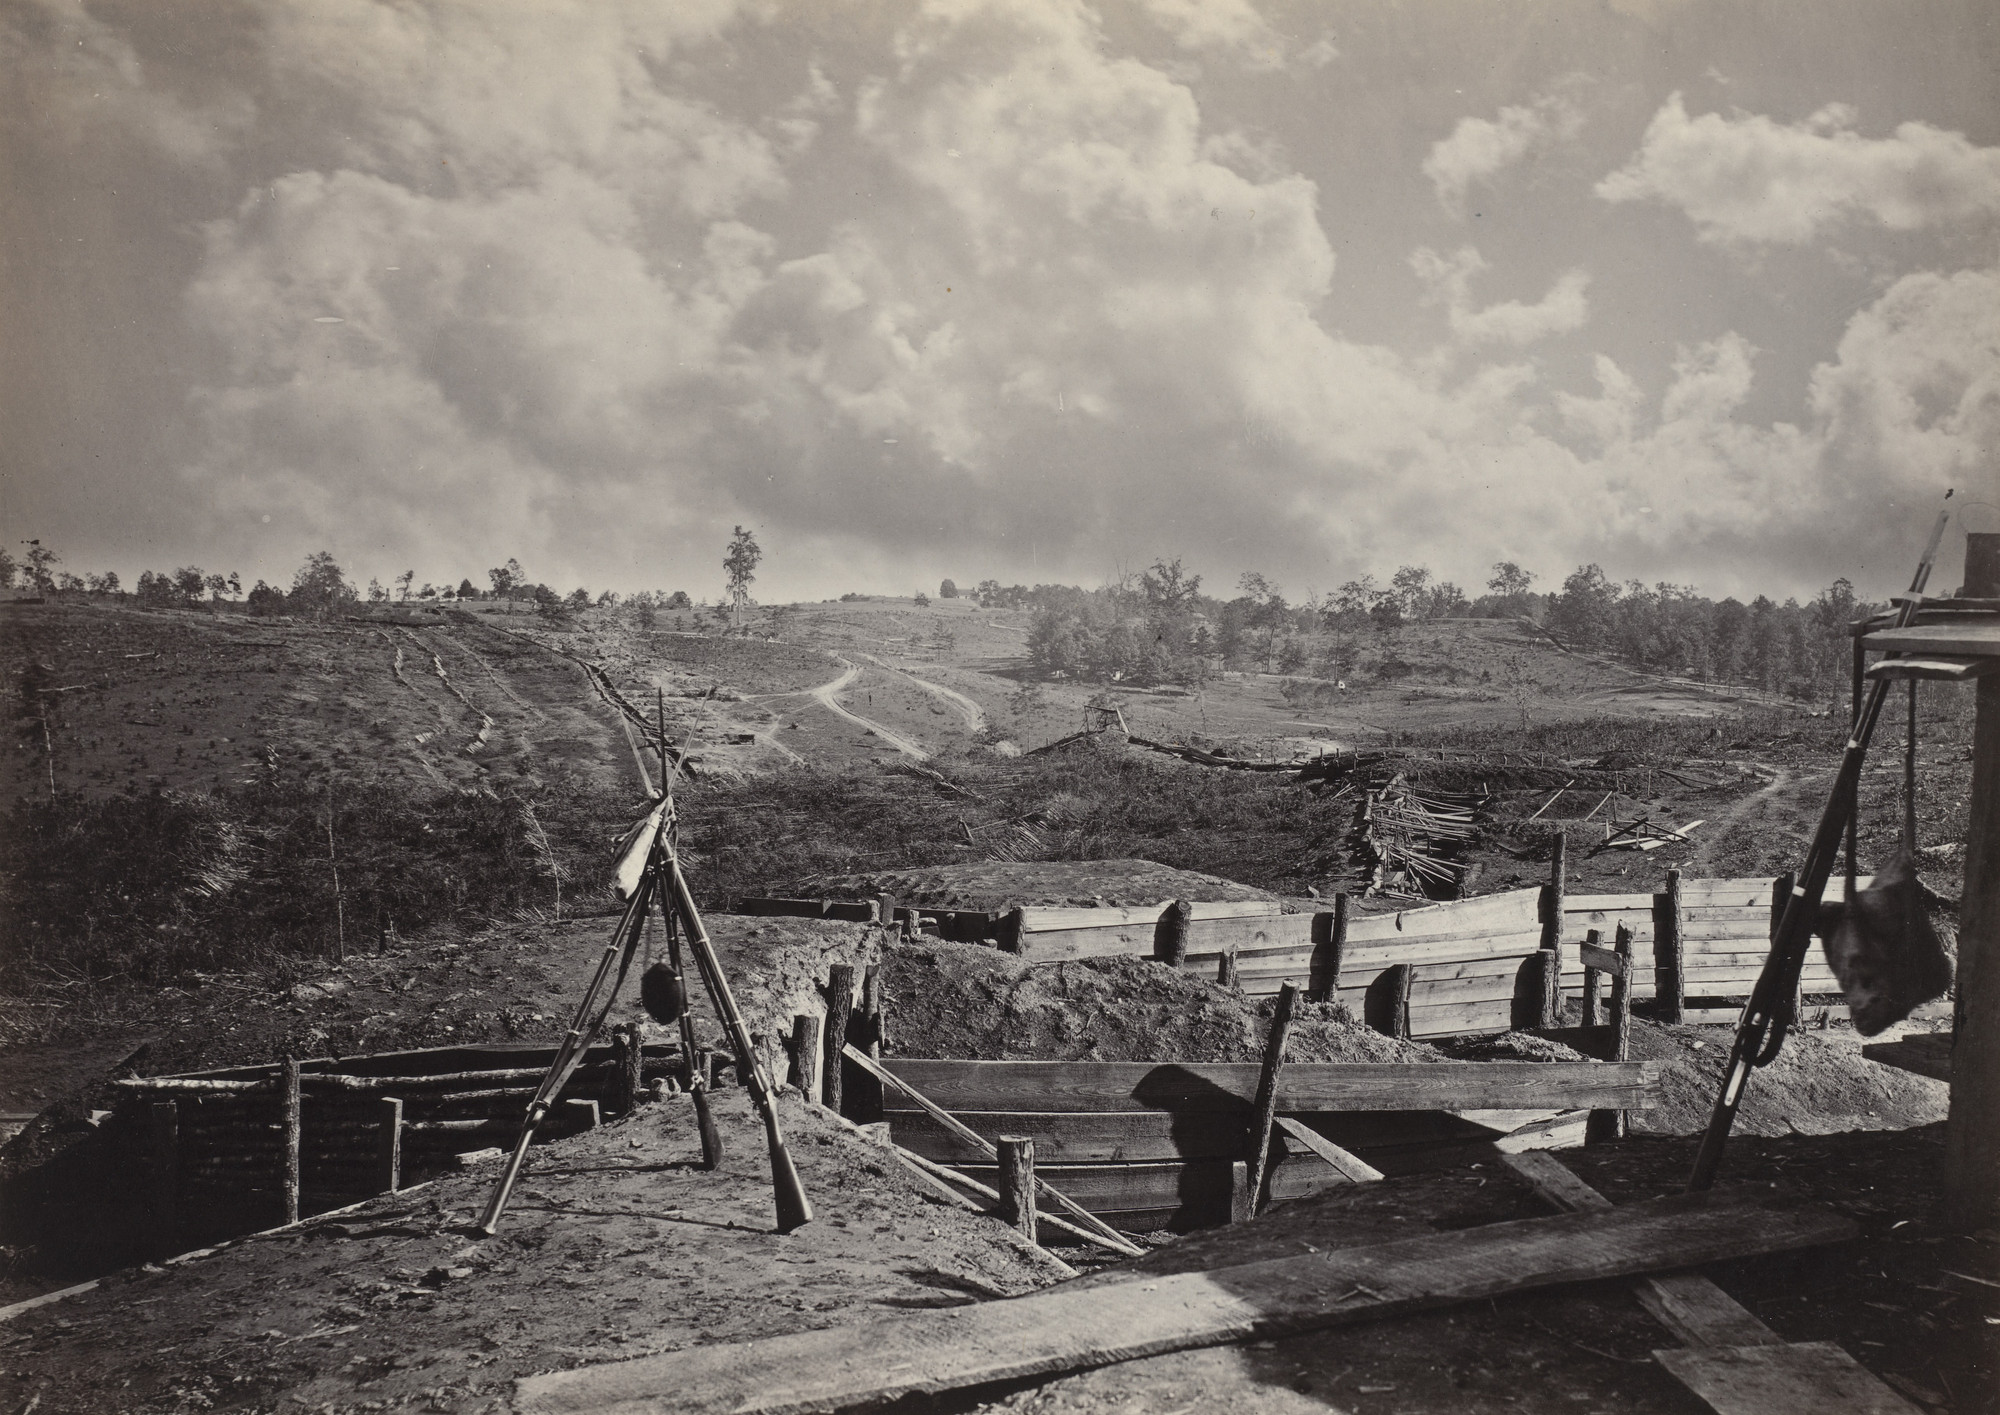 George Barnard. Rebel Works in front of Atlanta, No. 5 from the album Photographic Views of Sherman's Campaign. 1864-65